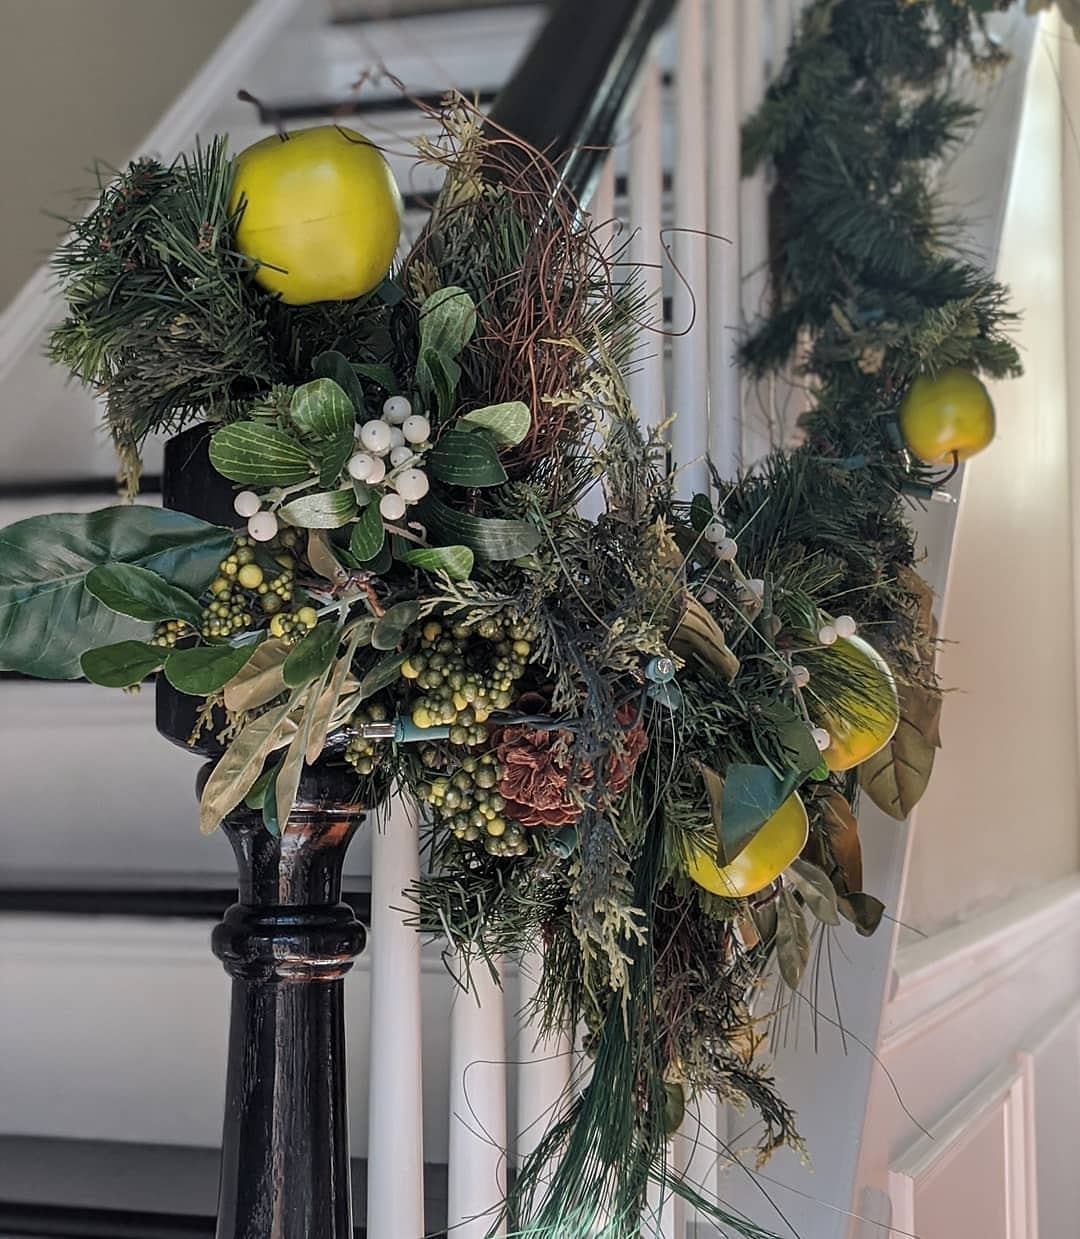 Dress your Home for the Holidays